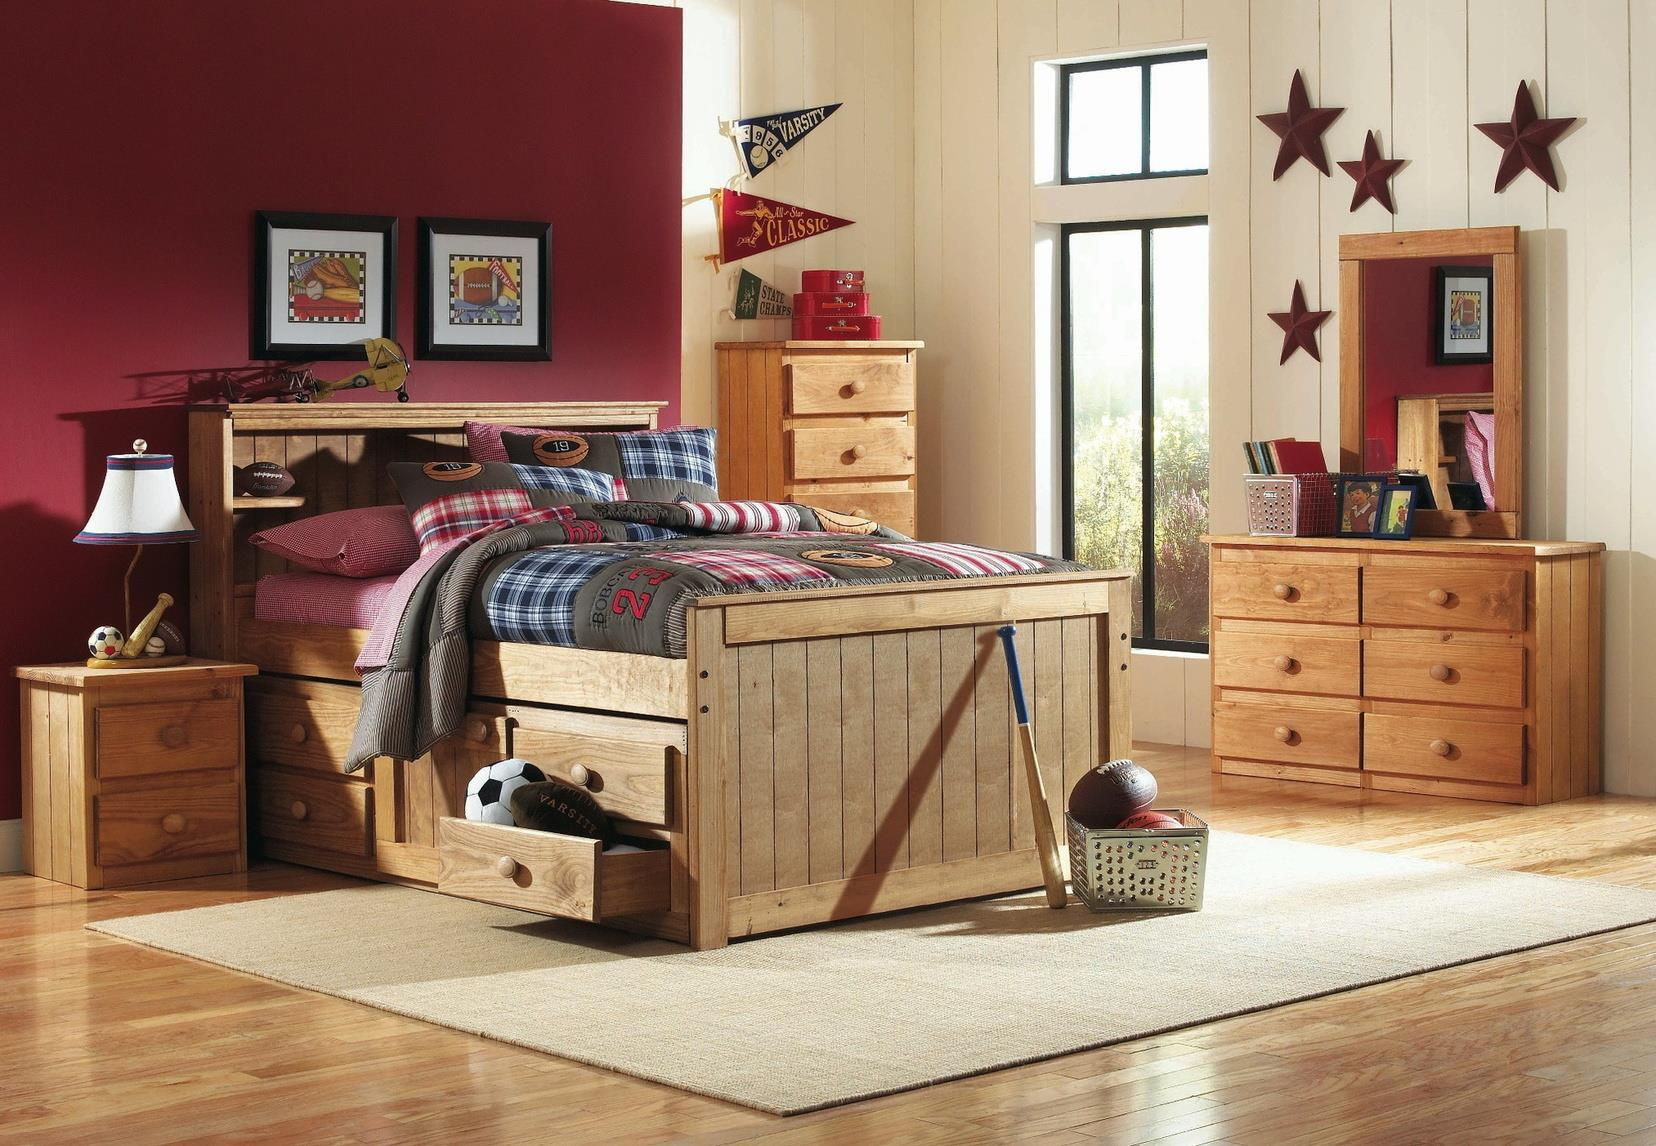 Simply Bunk Beds Pine 5 Drawer Chest ONLY Not pictured